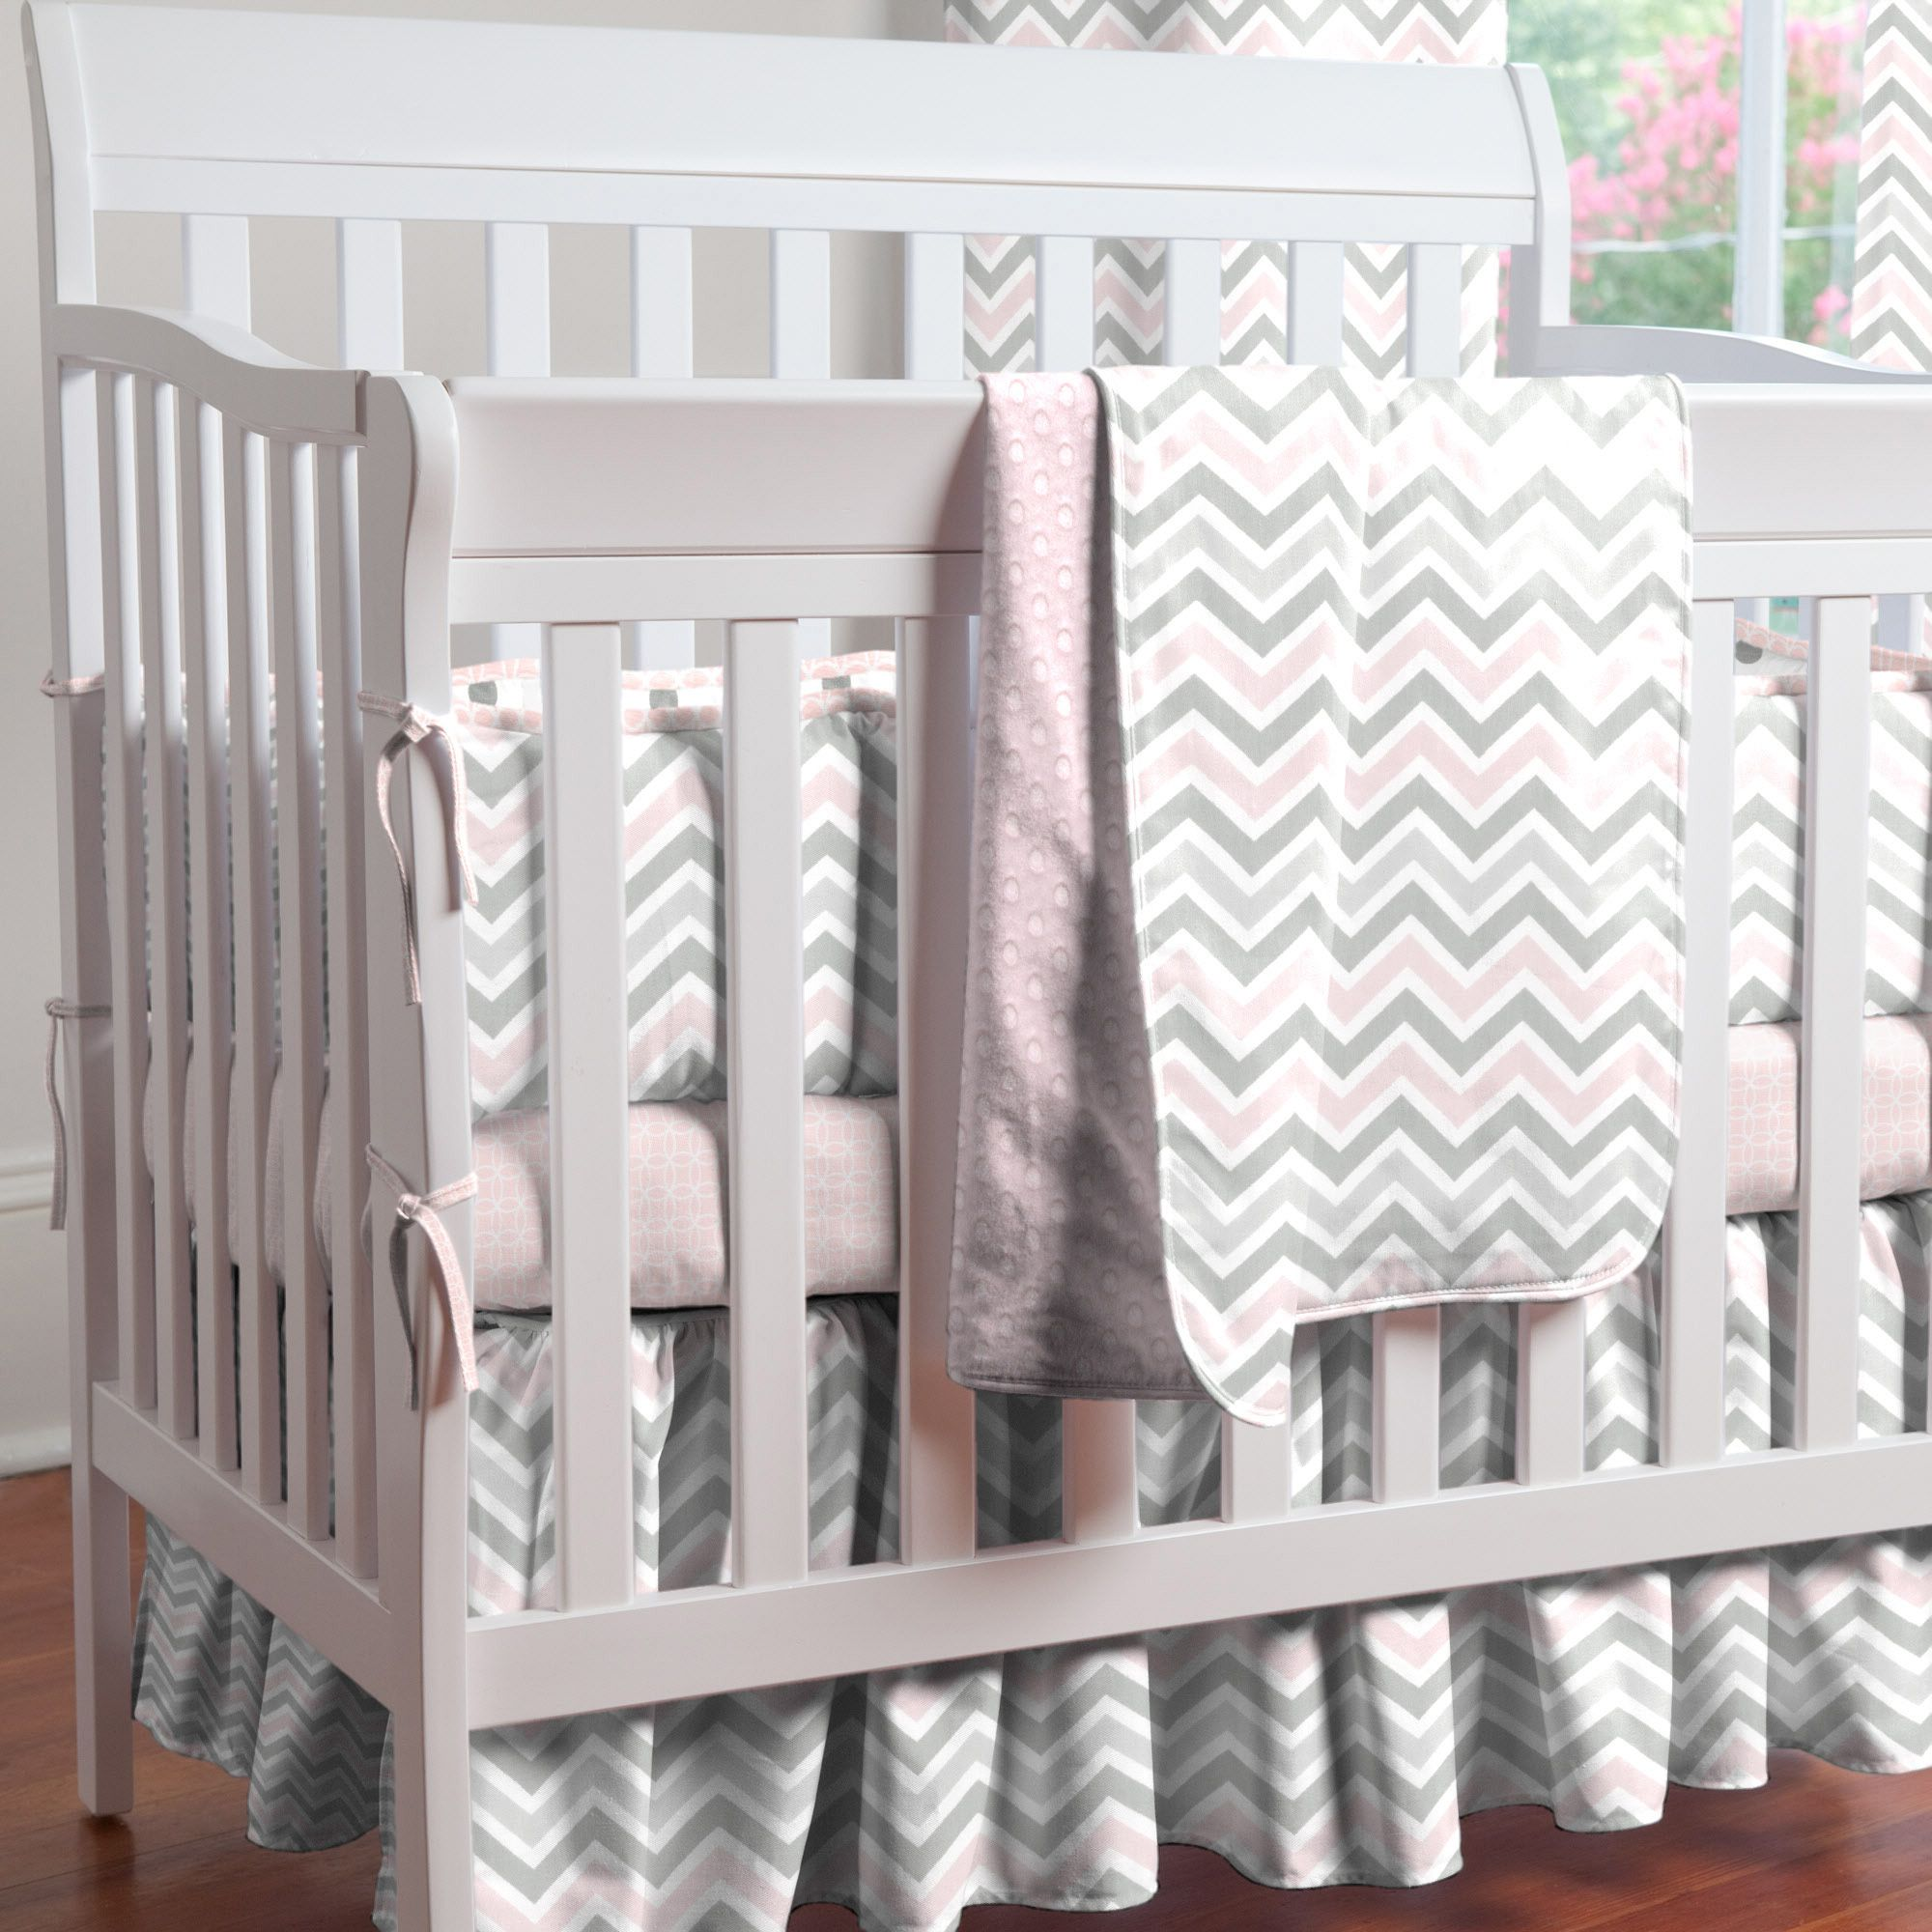 Mini Crib Bedding Sets For Girl.Pink And Gray Chevron Mini Crib Bedding Baby Girl Mini